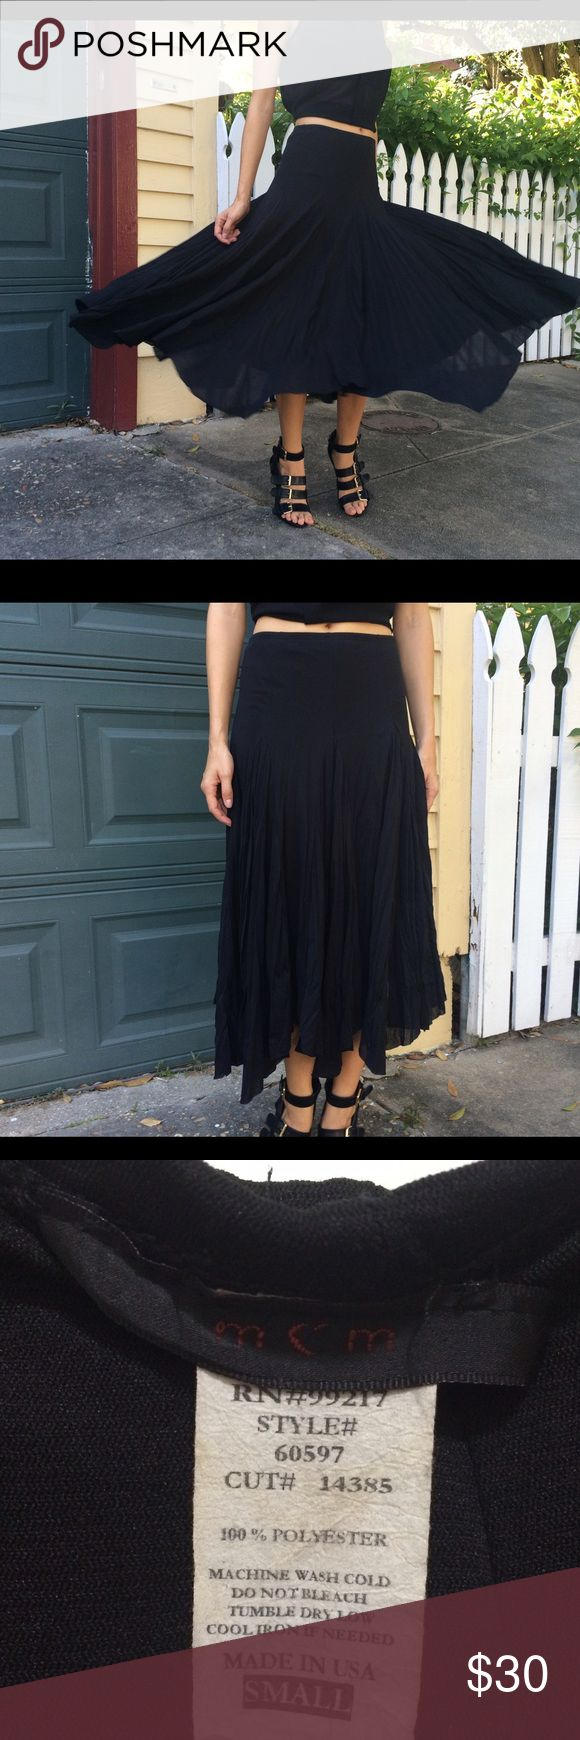 Fun flare midi skirt in black I just want to twirl all day in this skirt! Size small but very stretchy. In the photo I'm wearing it high-waisted but can be worn on hips. (My stats are 5'6'' and 110 lbs). Label looks like MCM brand but not positive. MCM Skirts Midi